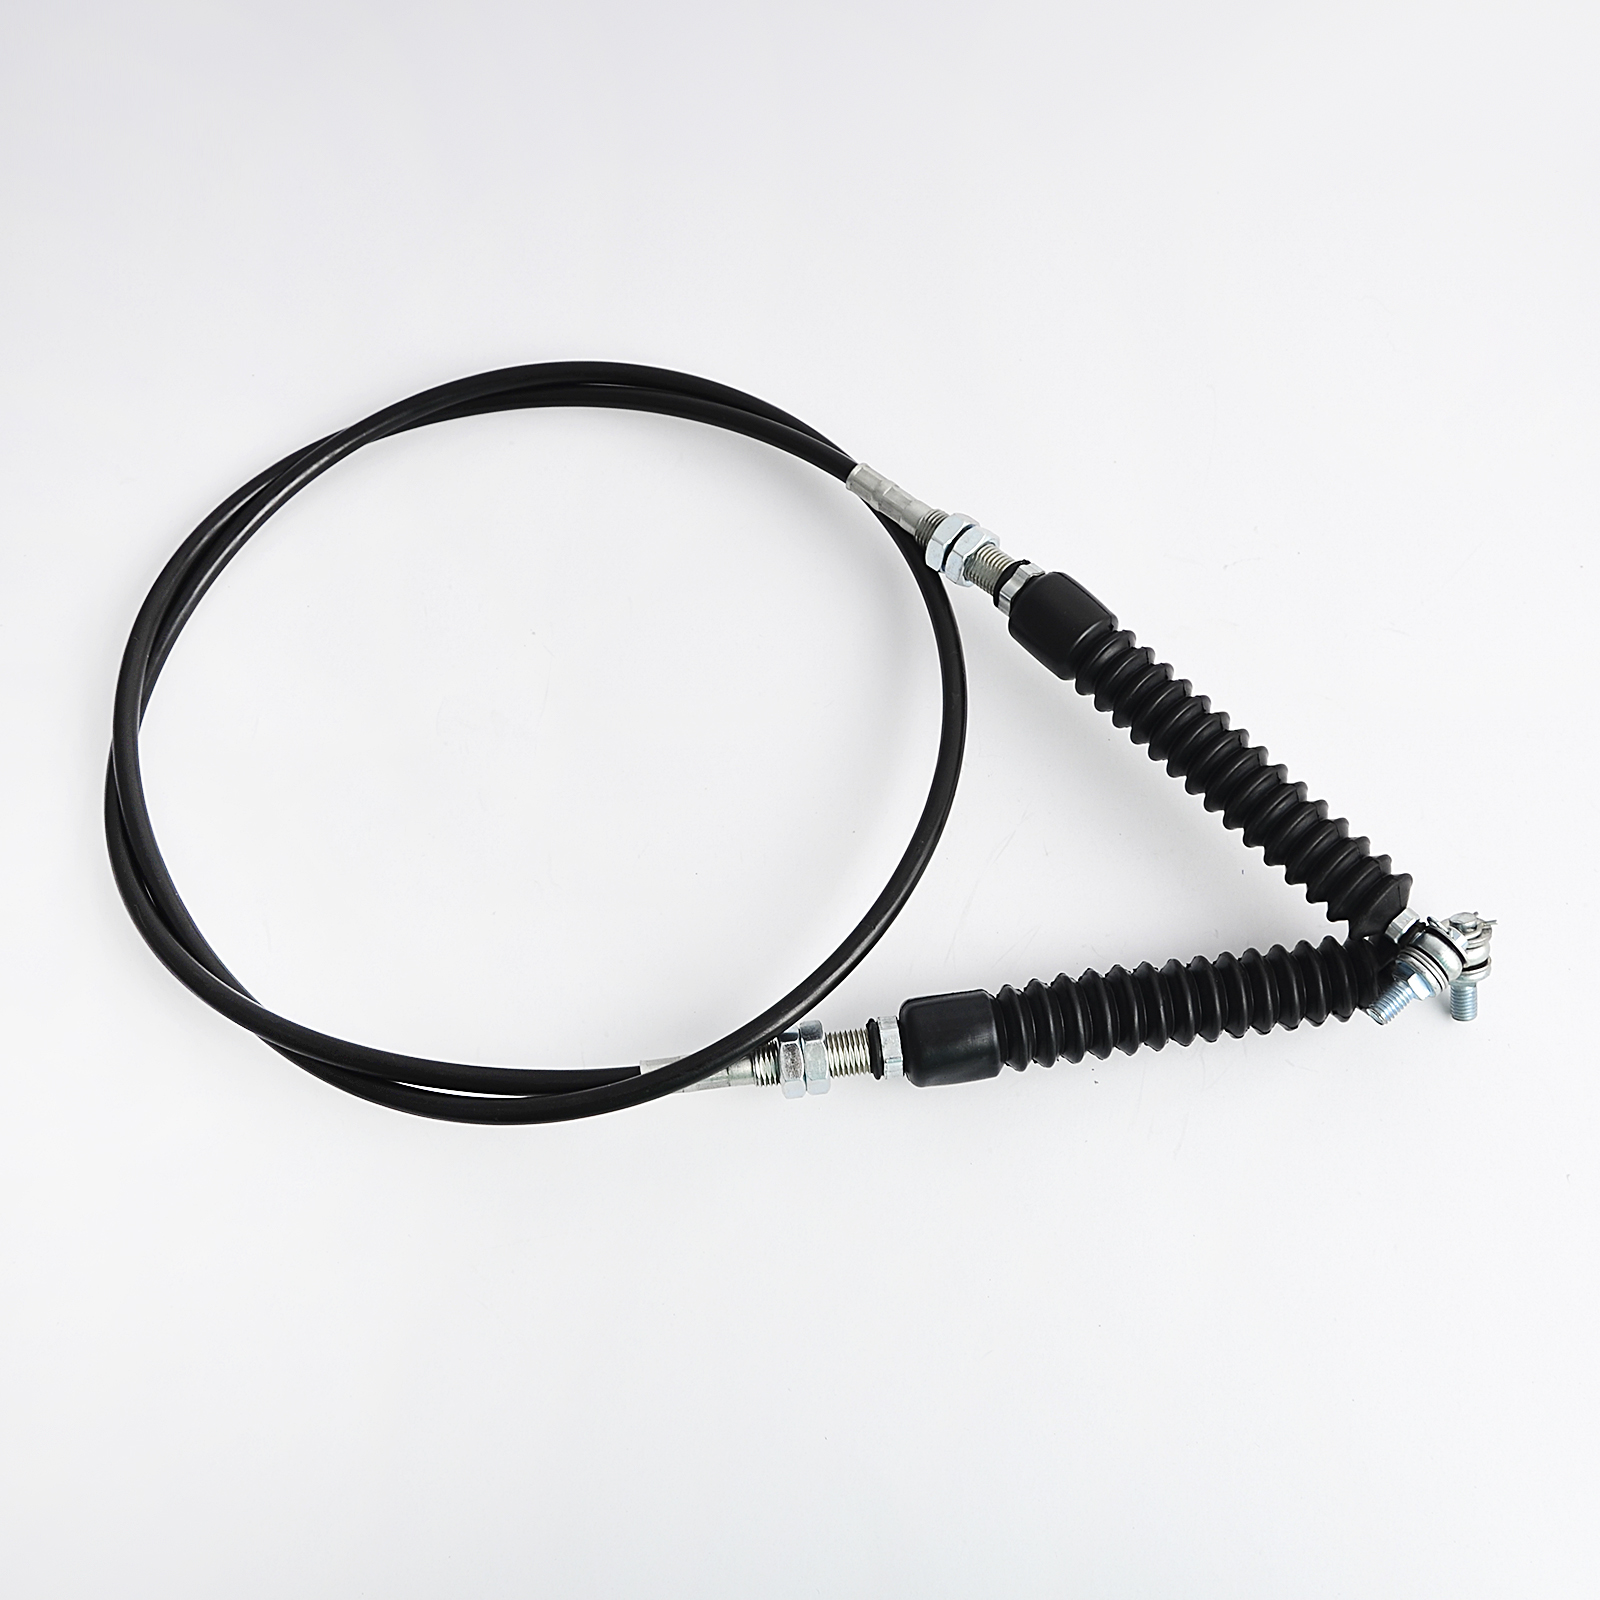 New shift cable 2004 2006 polaris ranger 2x4 4x4 6x6 tm gear new shift cable 2004 2006 polaris ranger 2x4 4x4 6x6 tm gear selector 7081005 in atv parts accessories from automobiles motorcycles on aliexpress sciox Images